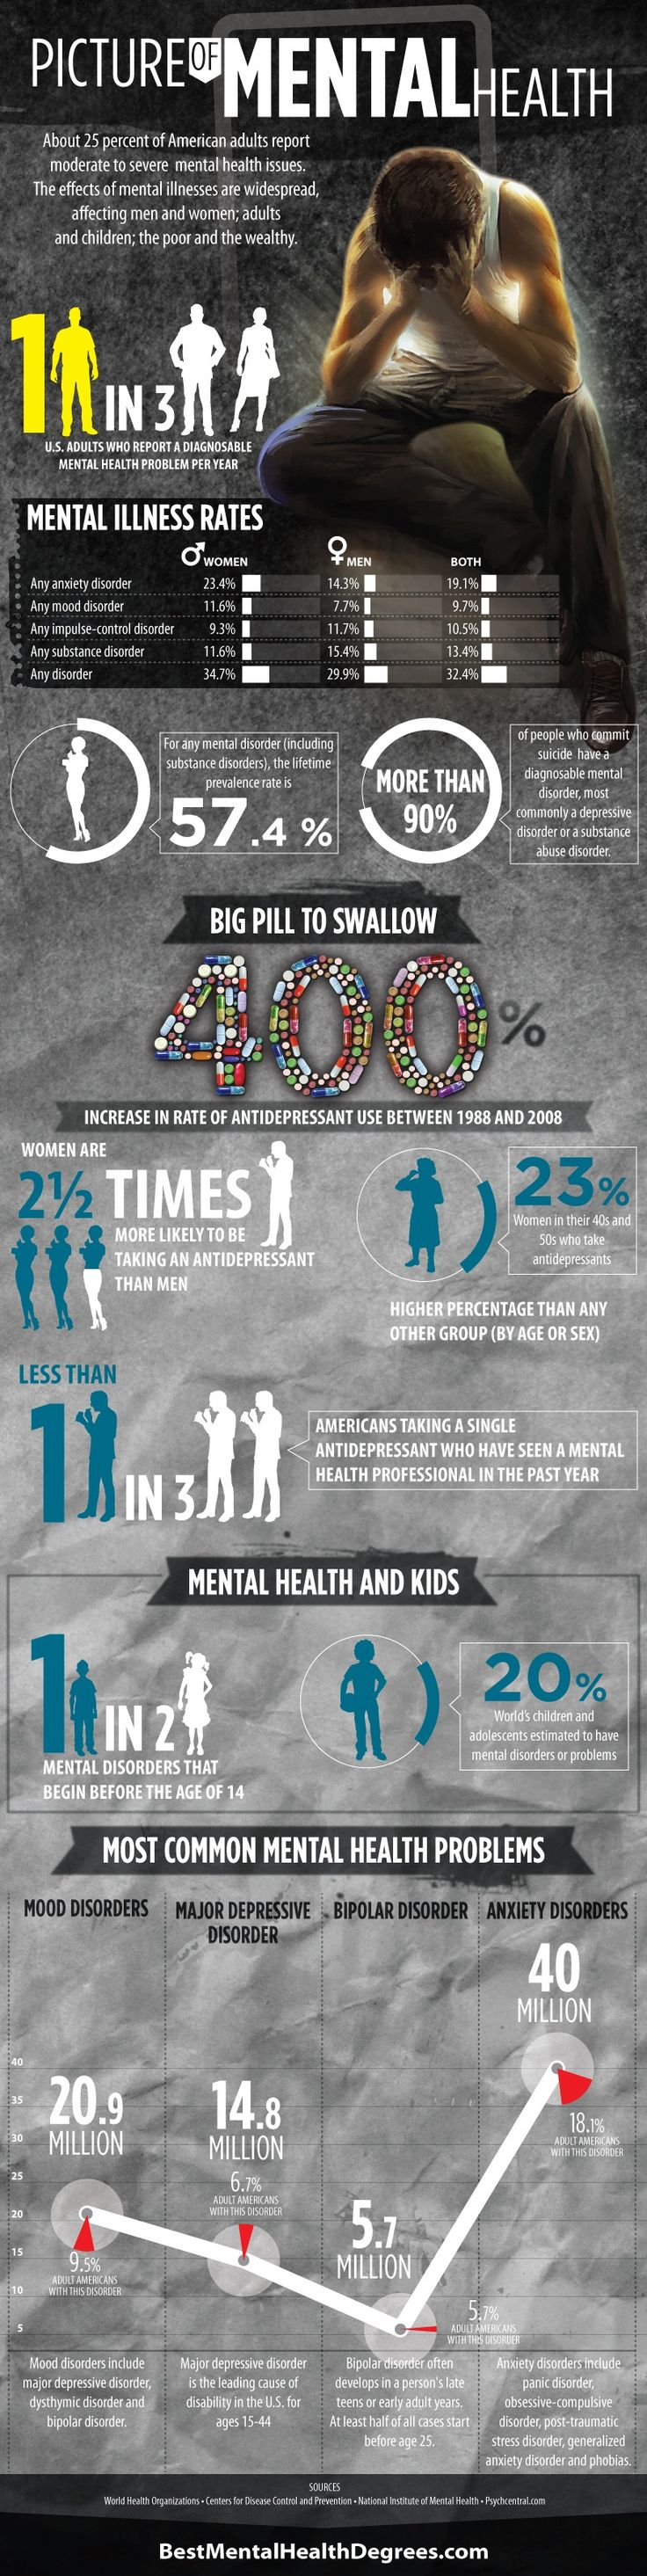 Mental health disorders can be debilitating. I've personally struggled with depression at different times in my life, and I know first hand how this stuff works. The good news is that mental health problems can often be managed. Sometimes it's nothing more than changing your diet and activity level.